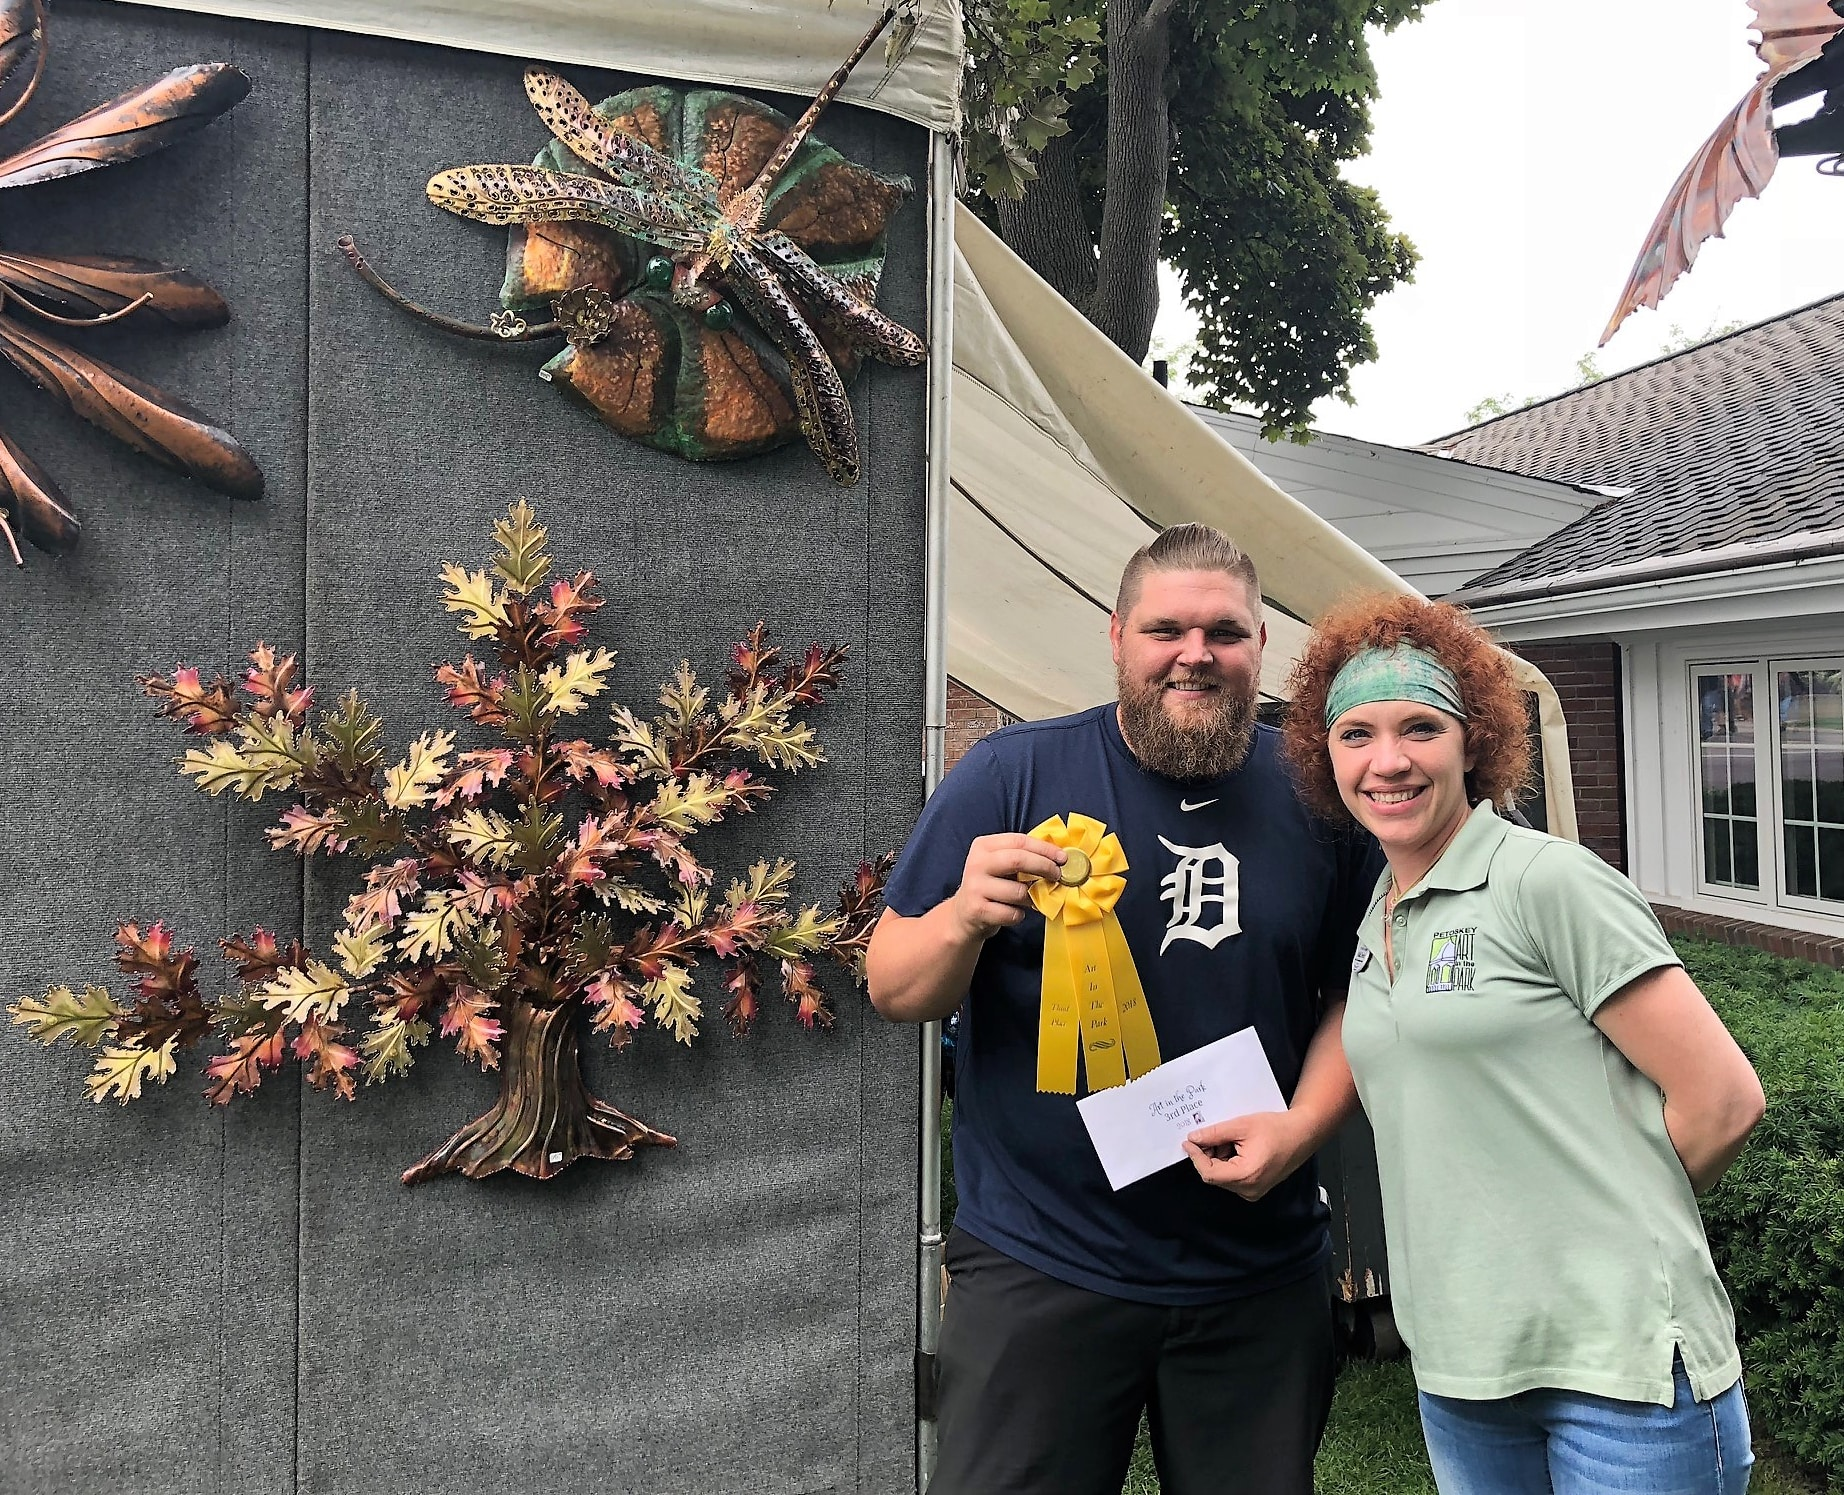 Chad Anderson - 2018 Petoskey Art in the Park - 3rd place